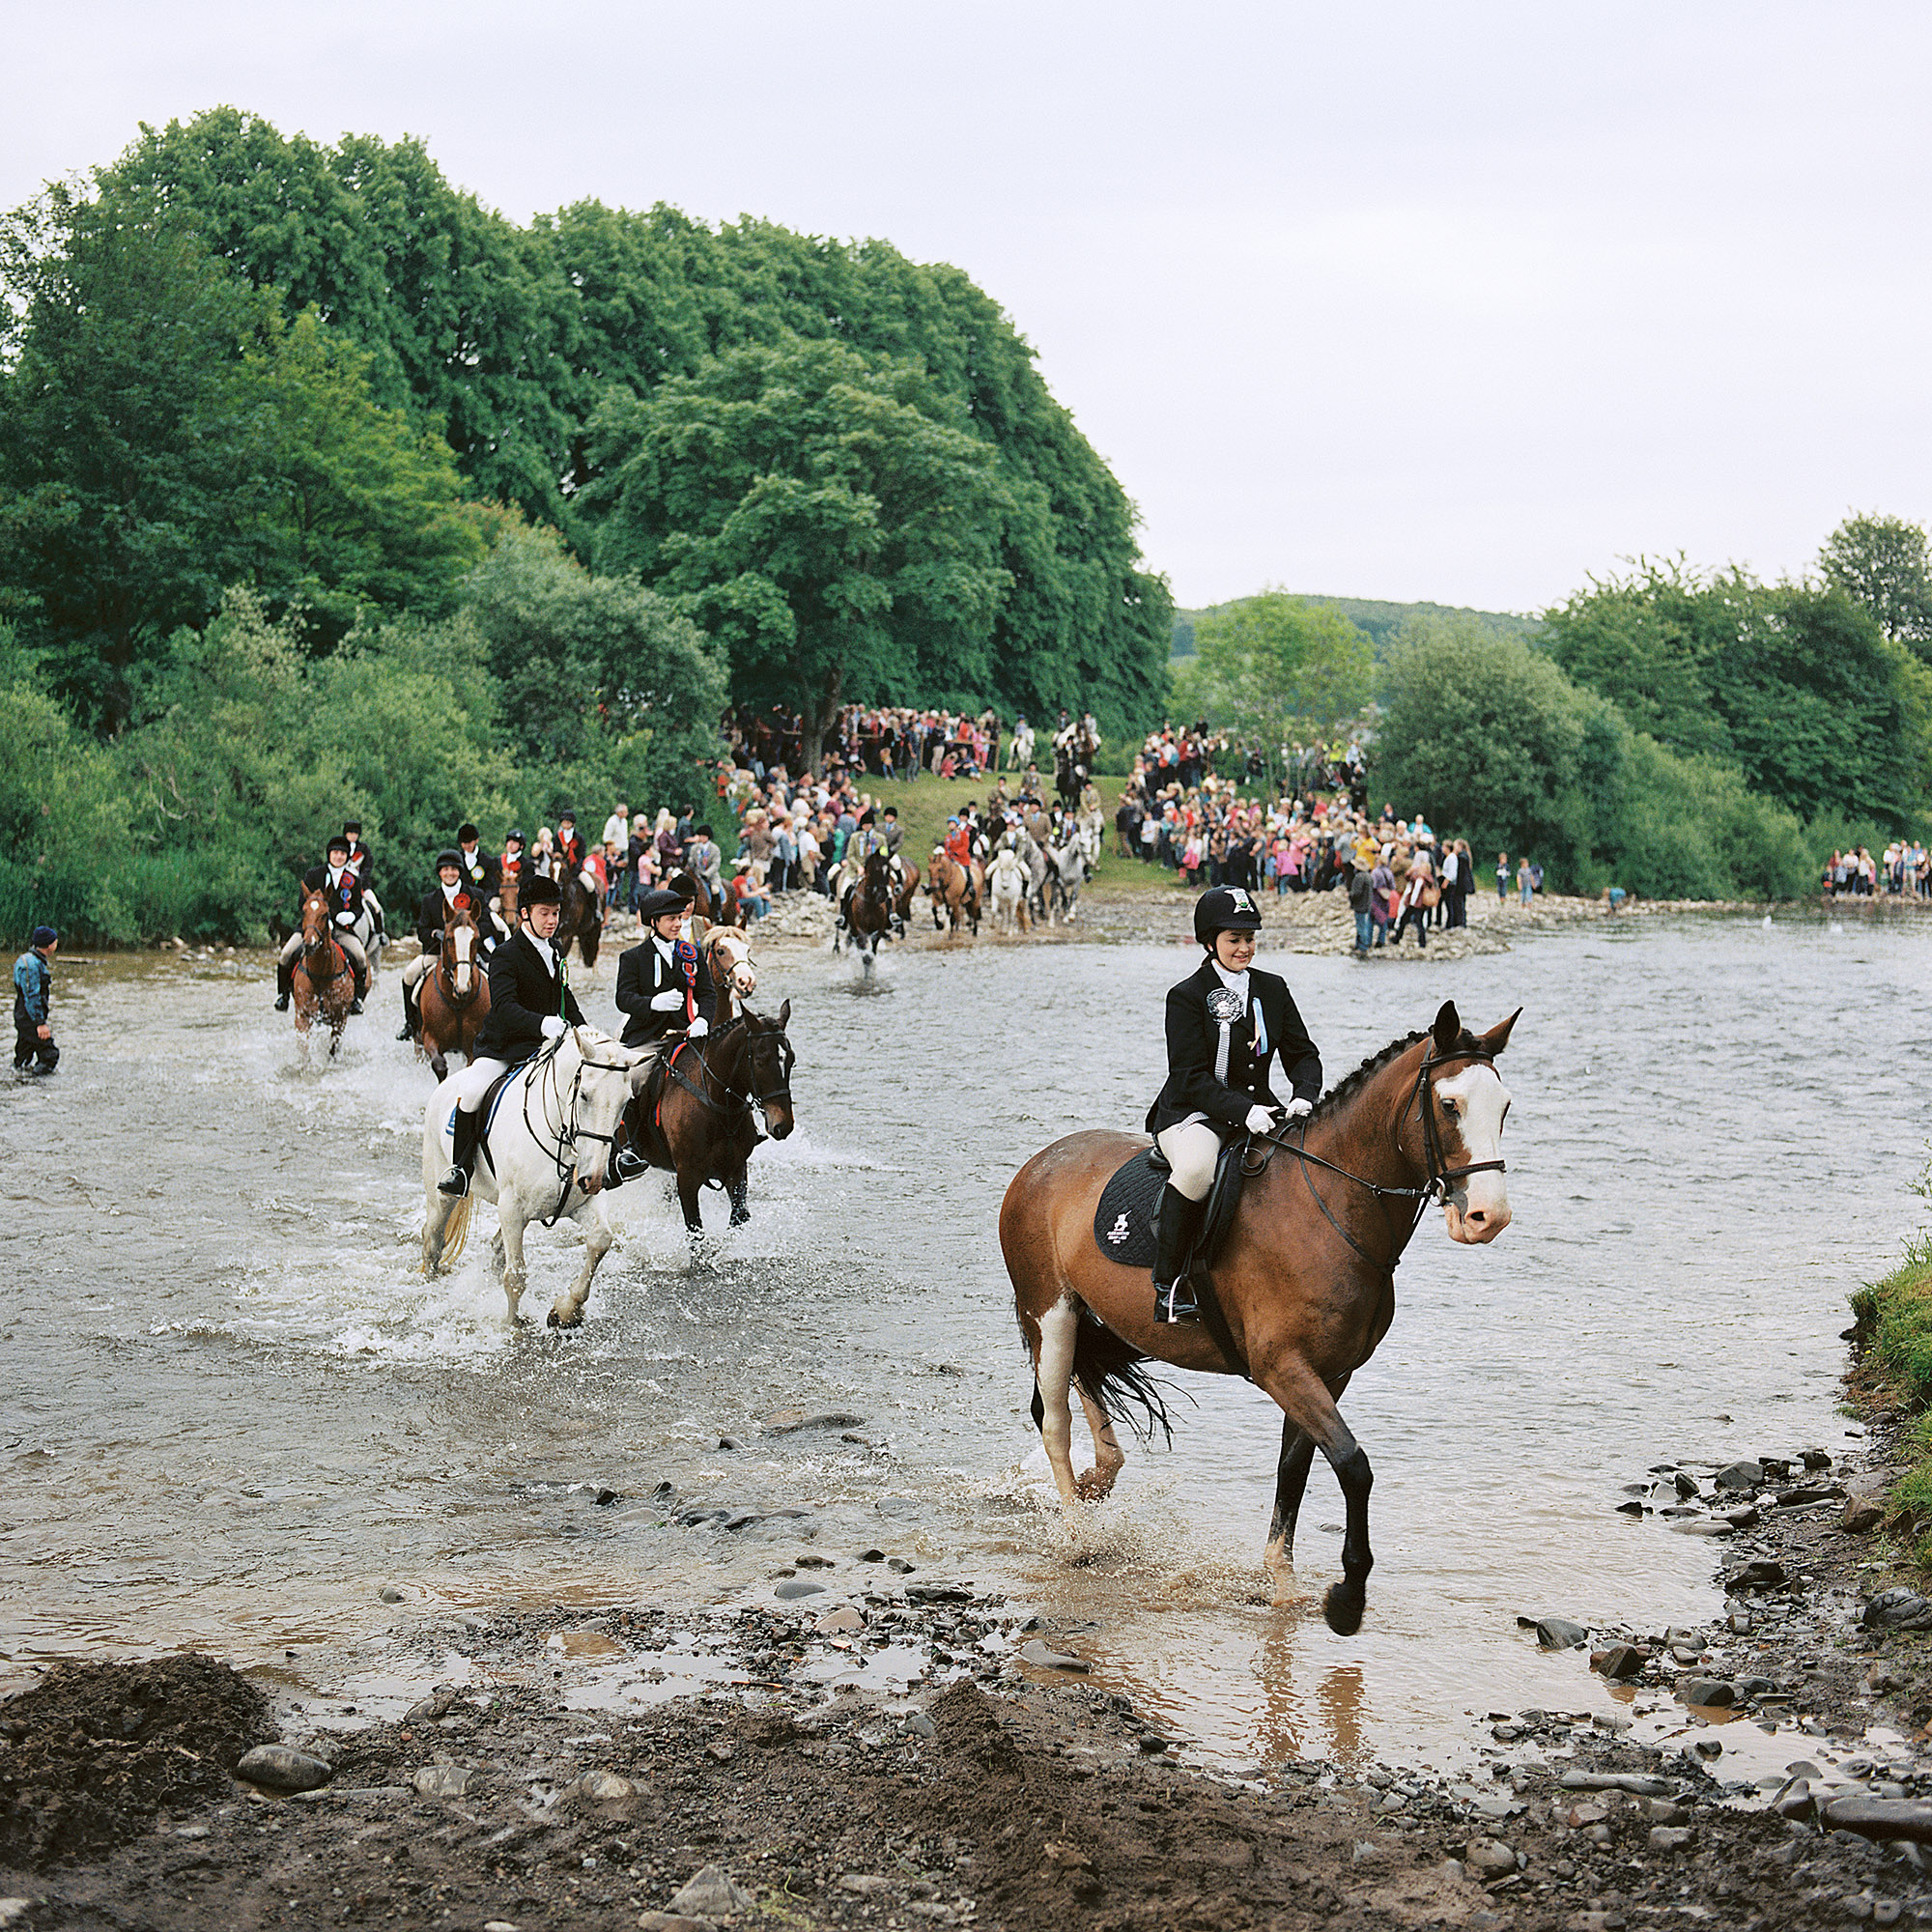 Riders ford the River Ettrick during the Selkirk Common Riding